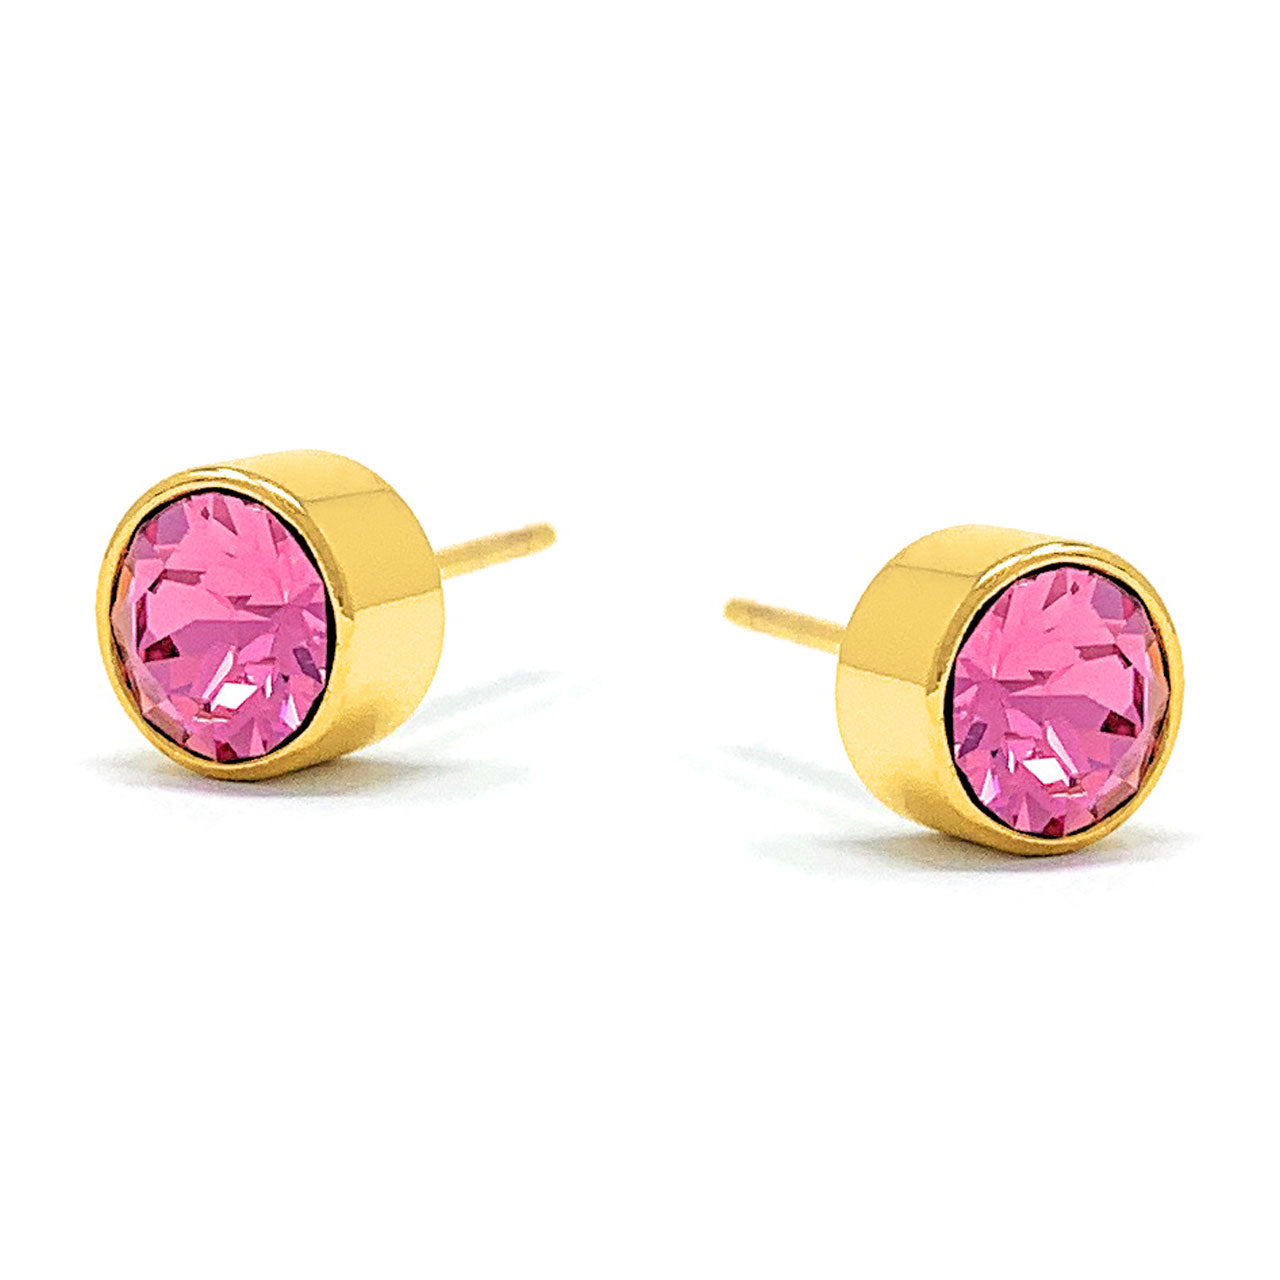 Harley Small Stud Earrings with Pink Rose Round Crystals from Swarovski Gold Plated - Ed Heart